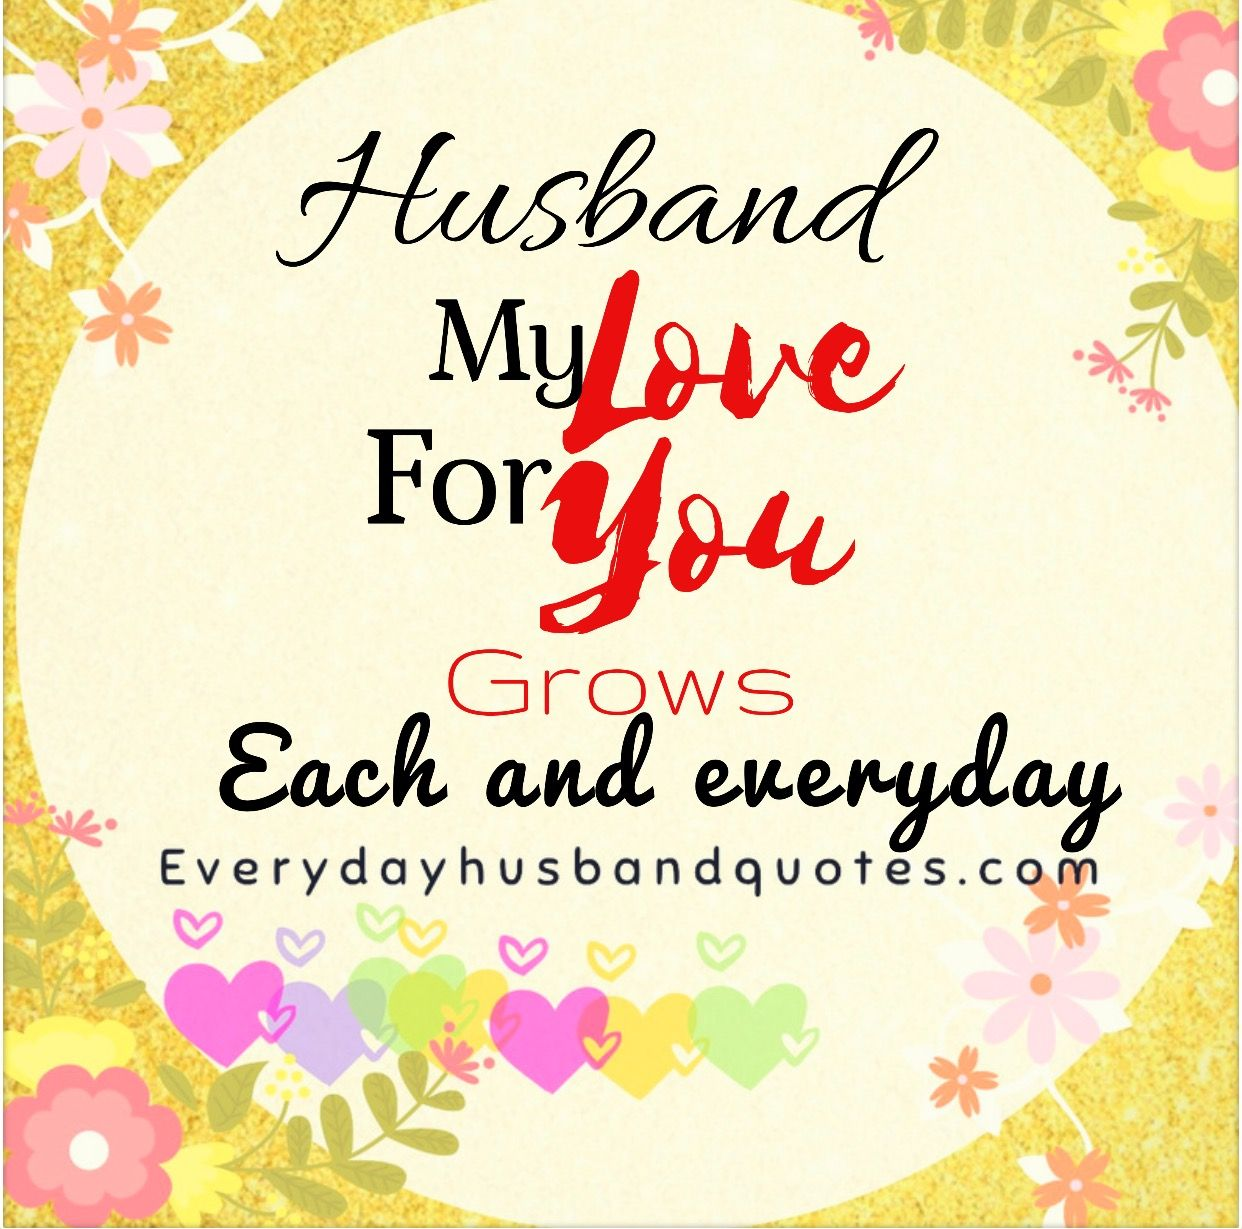 Husband Quote Husband My Love For You Grows Each And Everyday